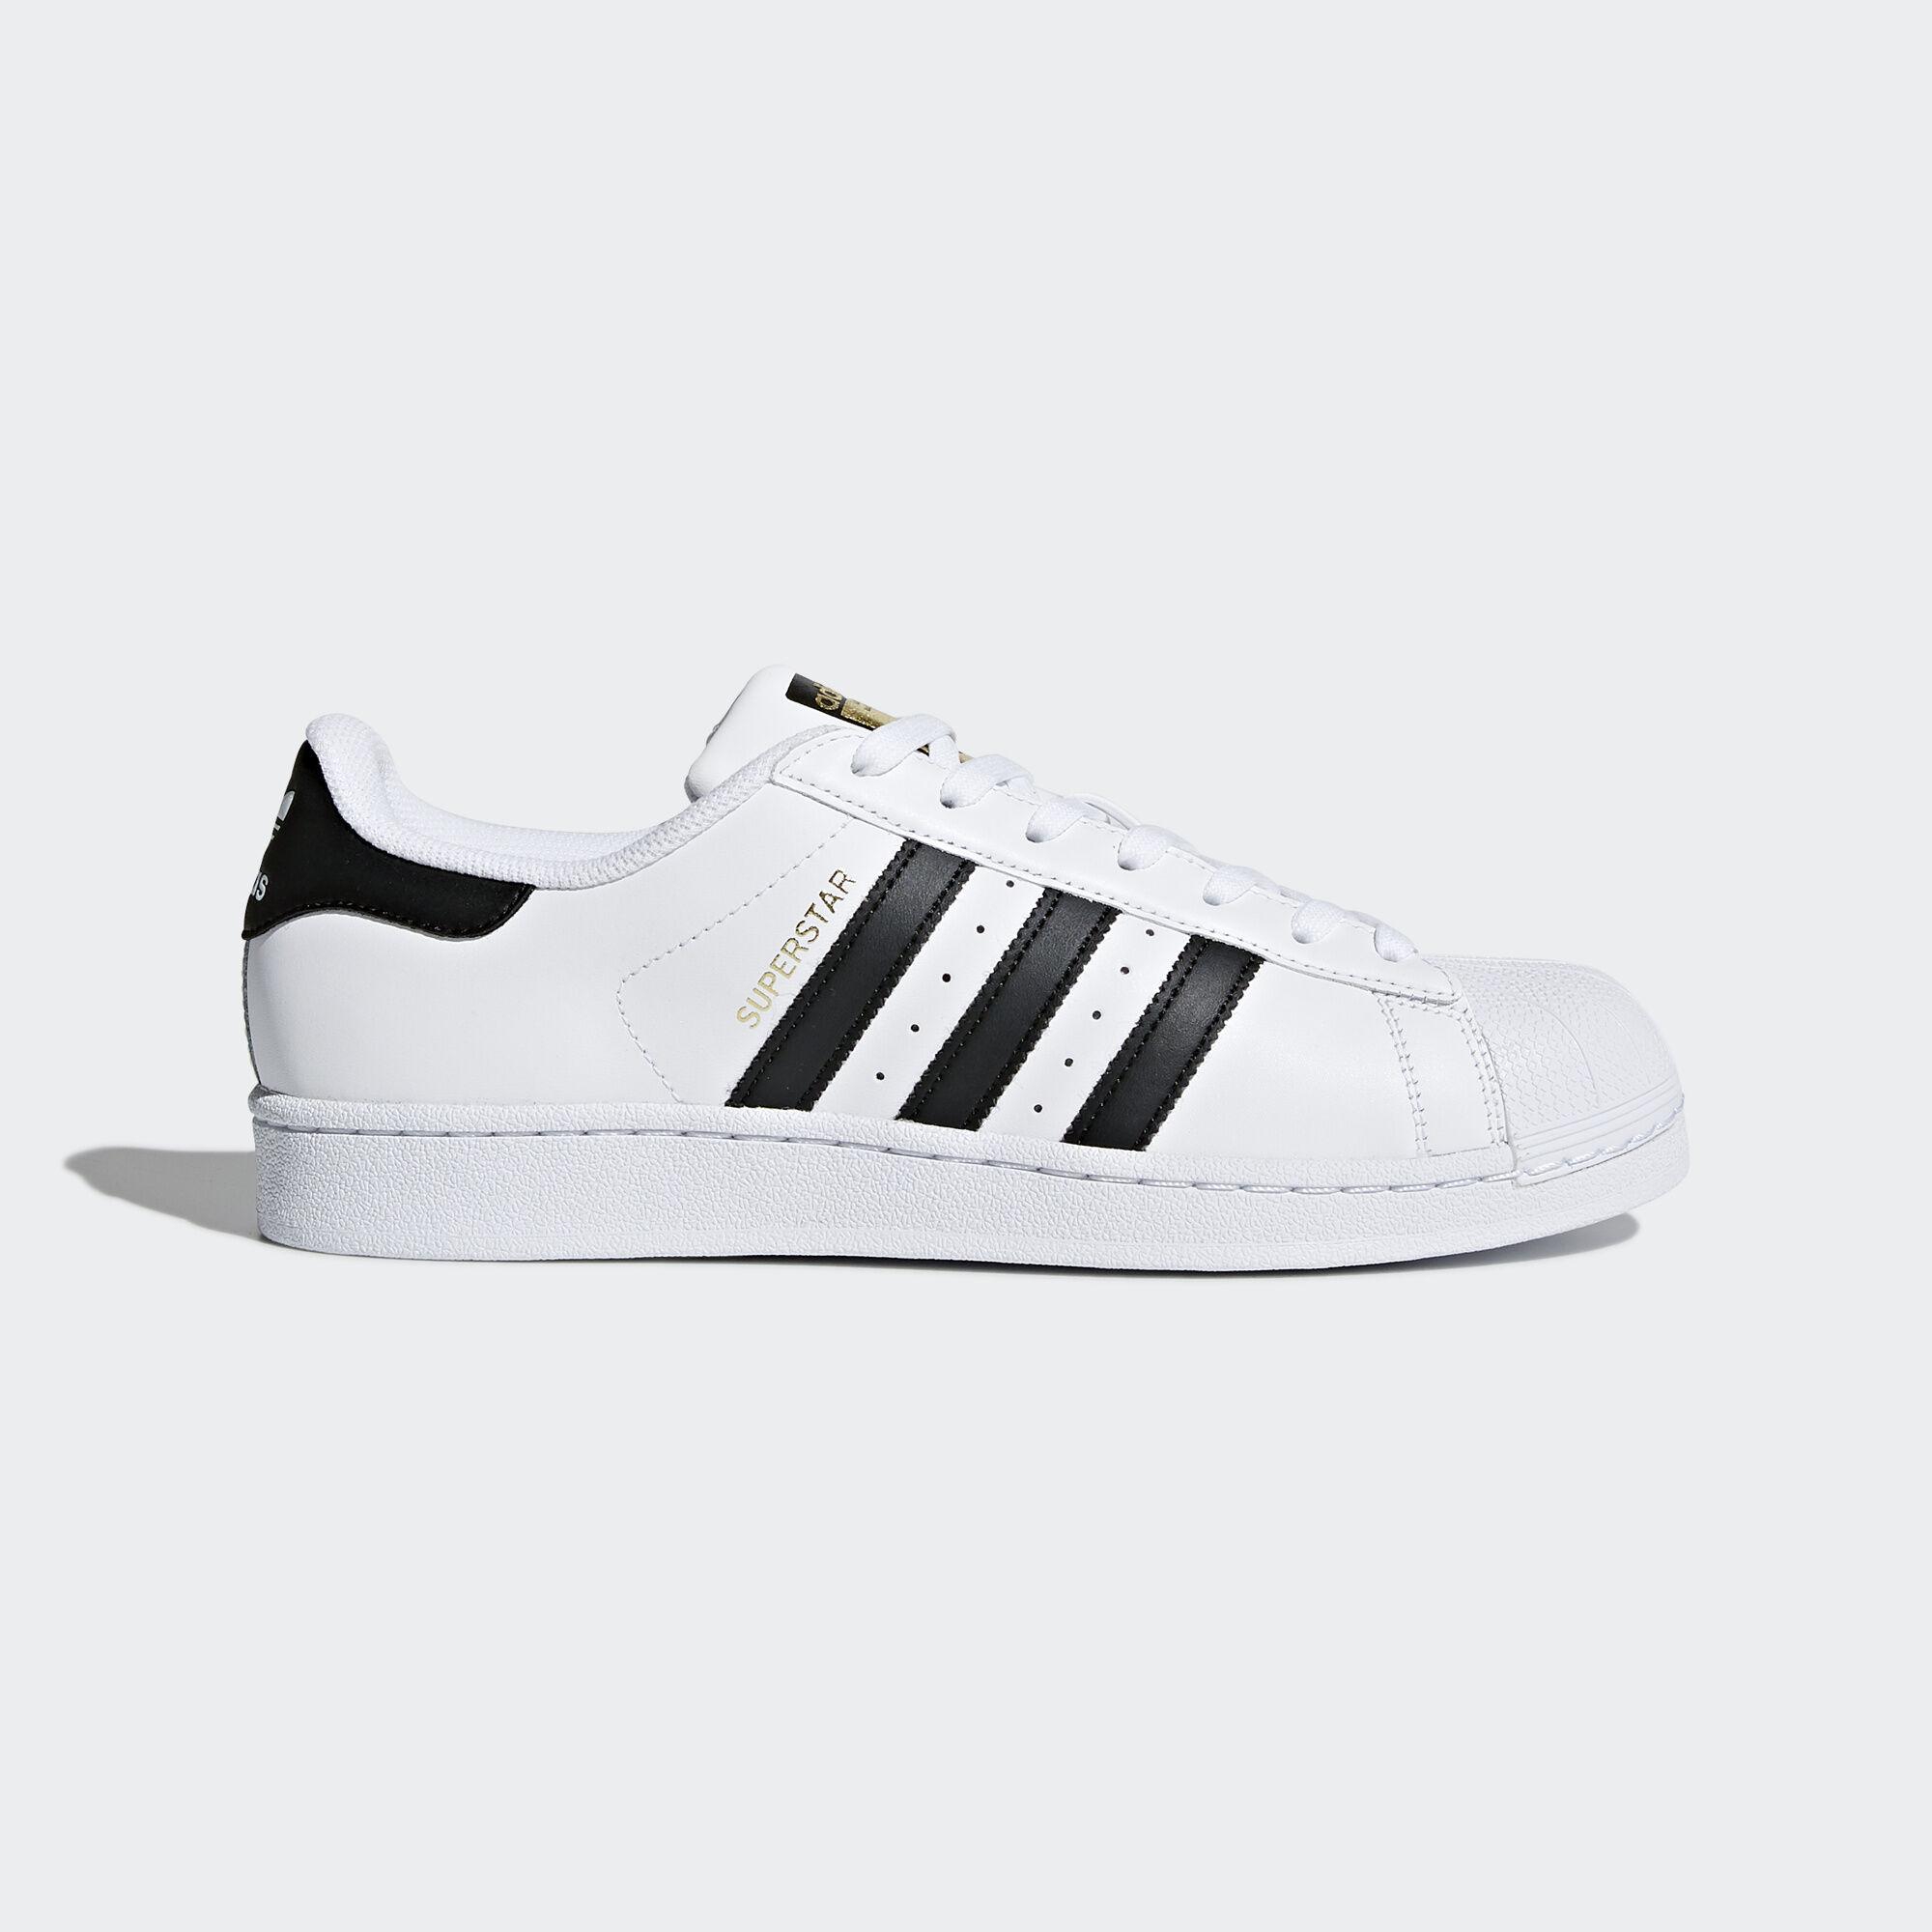 All Star Adidas Shoes Black